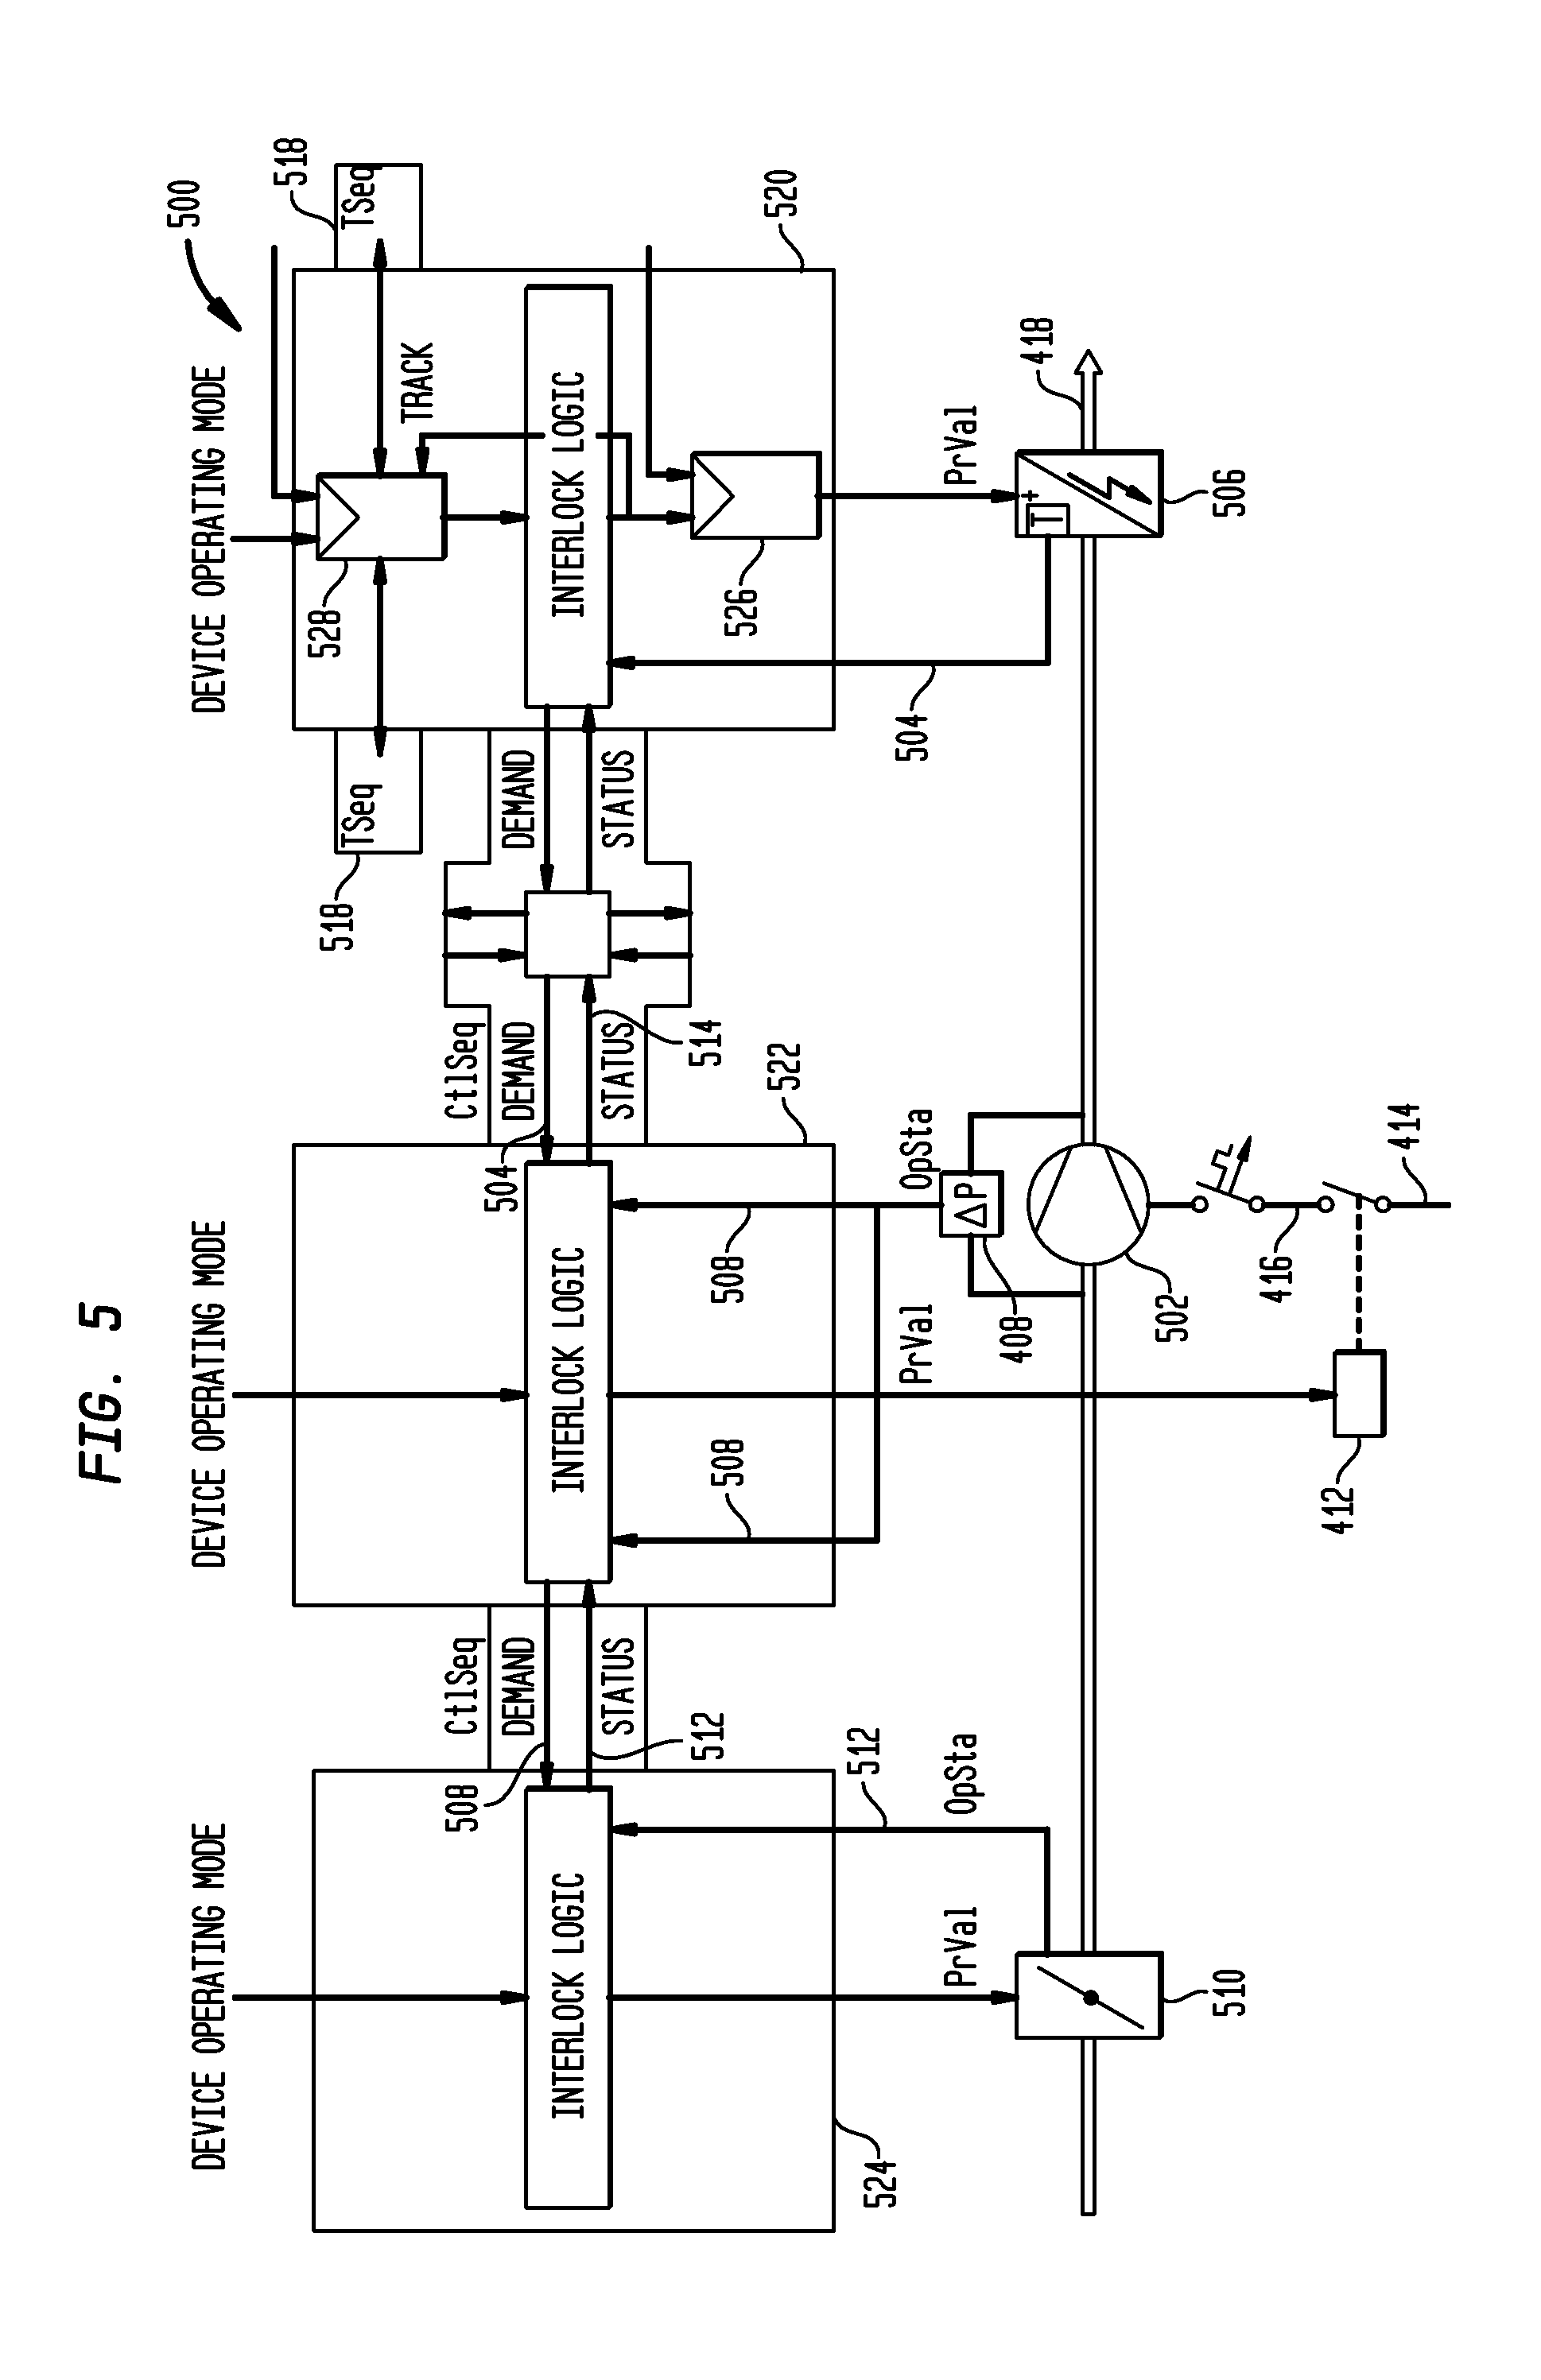 US20130253709A1 20130926 D00005 patent us20130253709 system and method for hvac interlocks boiler interlock wiring diagram at bayanpartner.co